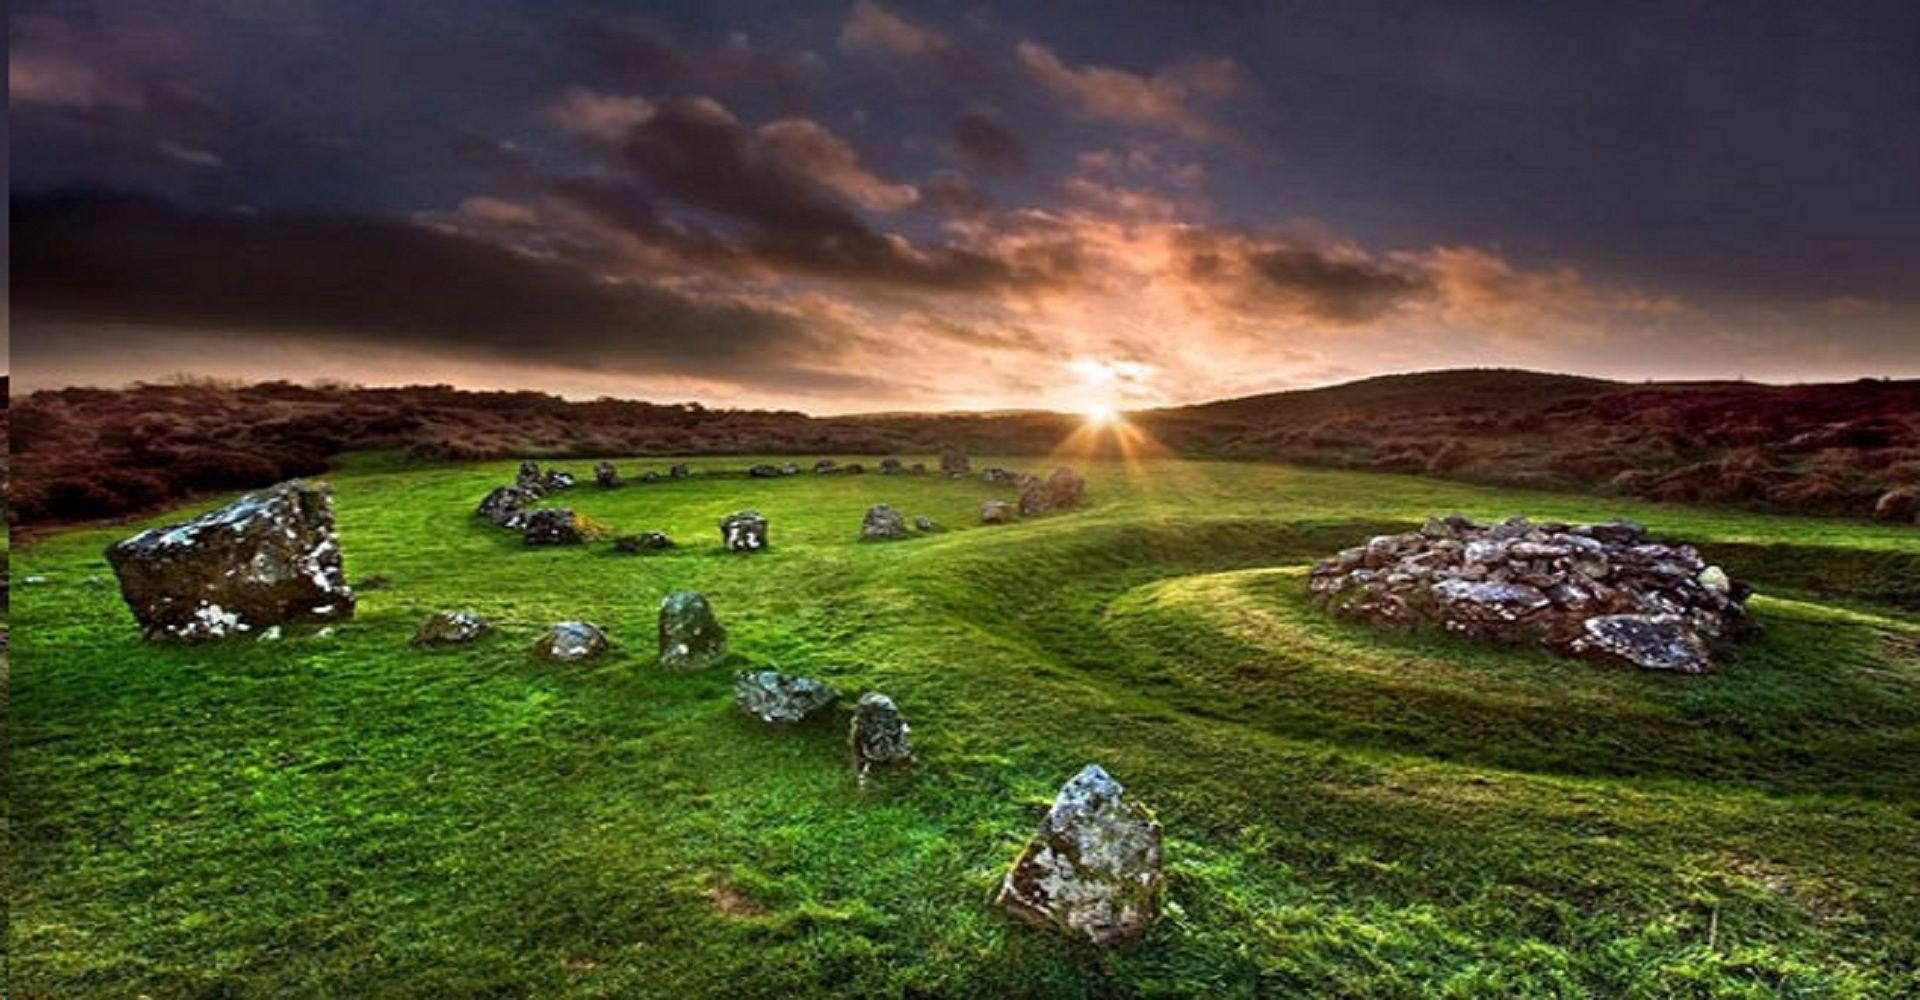 7 Reasons to visit mysterious Beaghmore Stone Circles